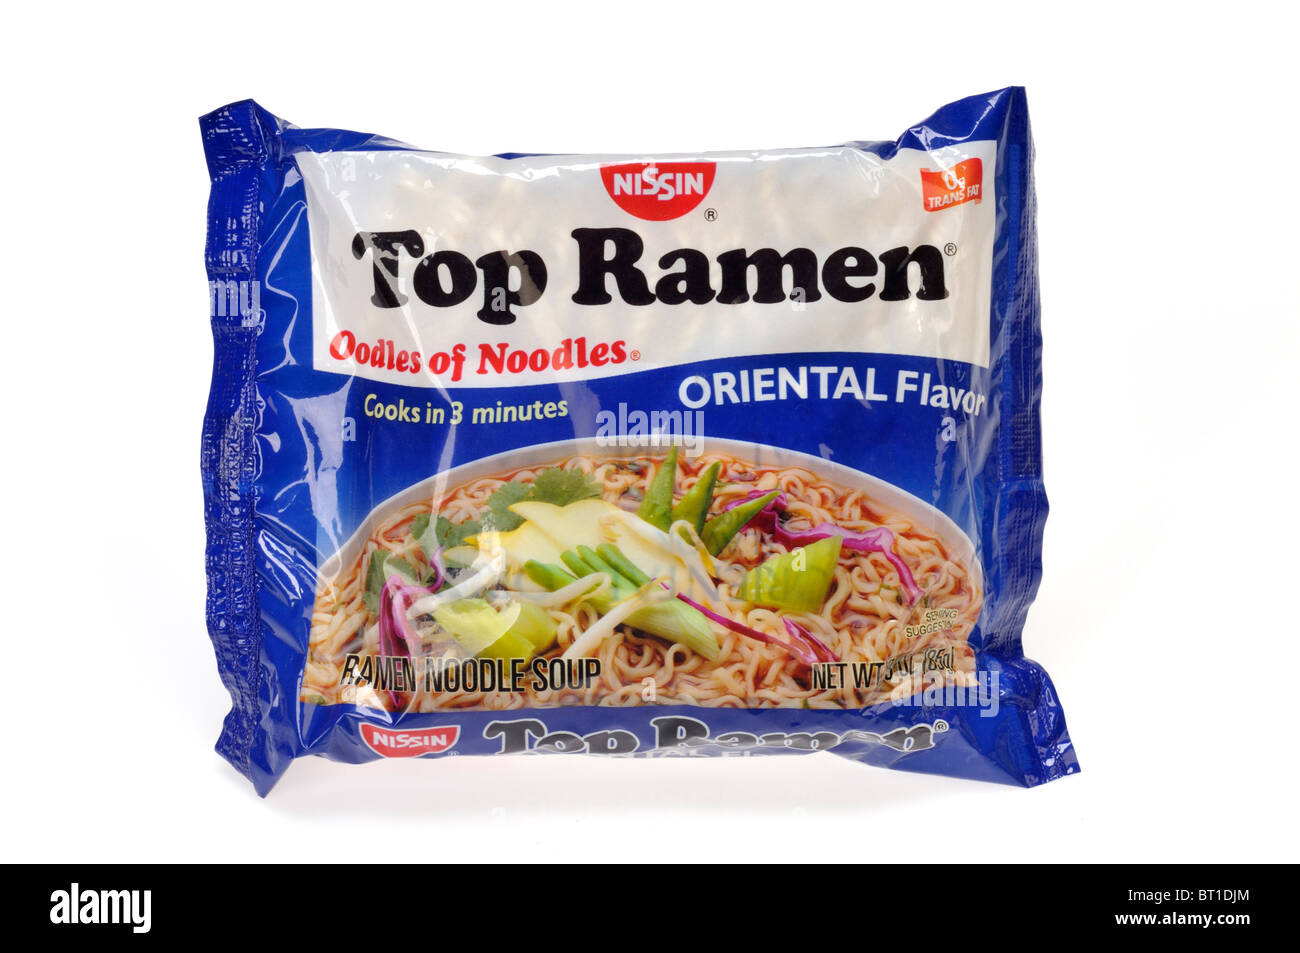 Package of Top Ramen Oodles of noodles chinese oriental flavor on white background - Stock Image